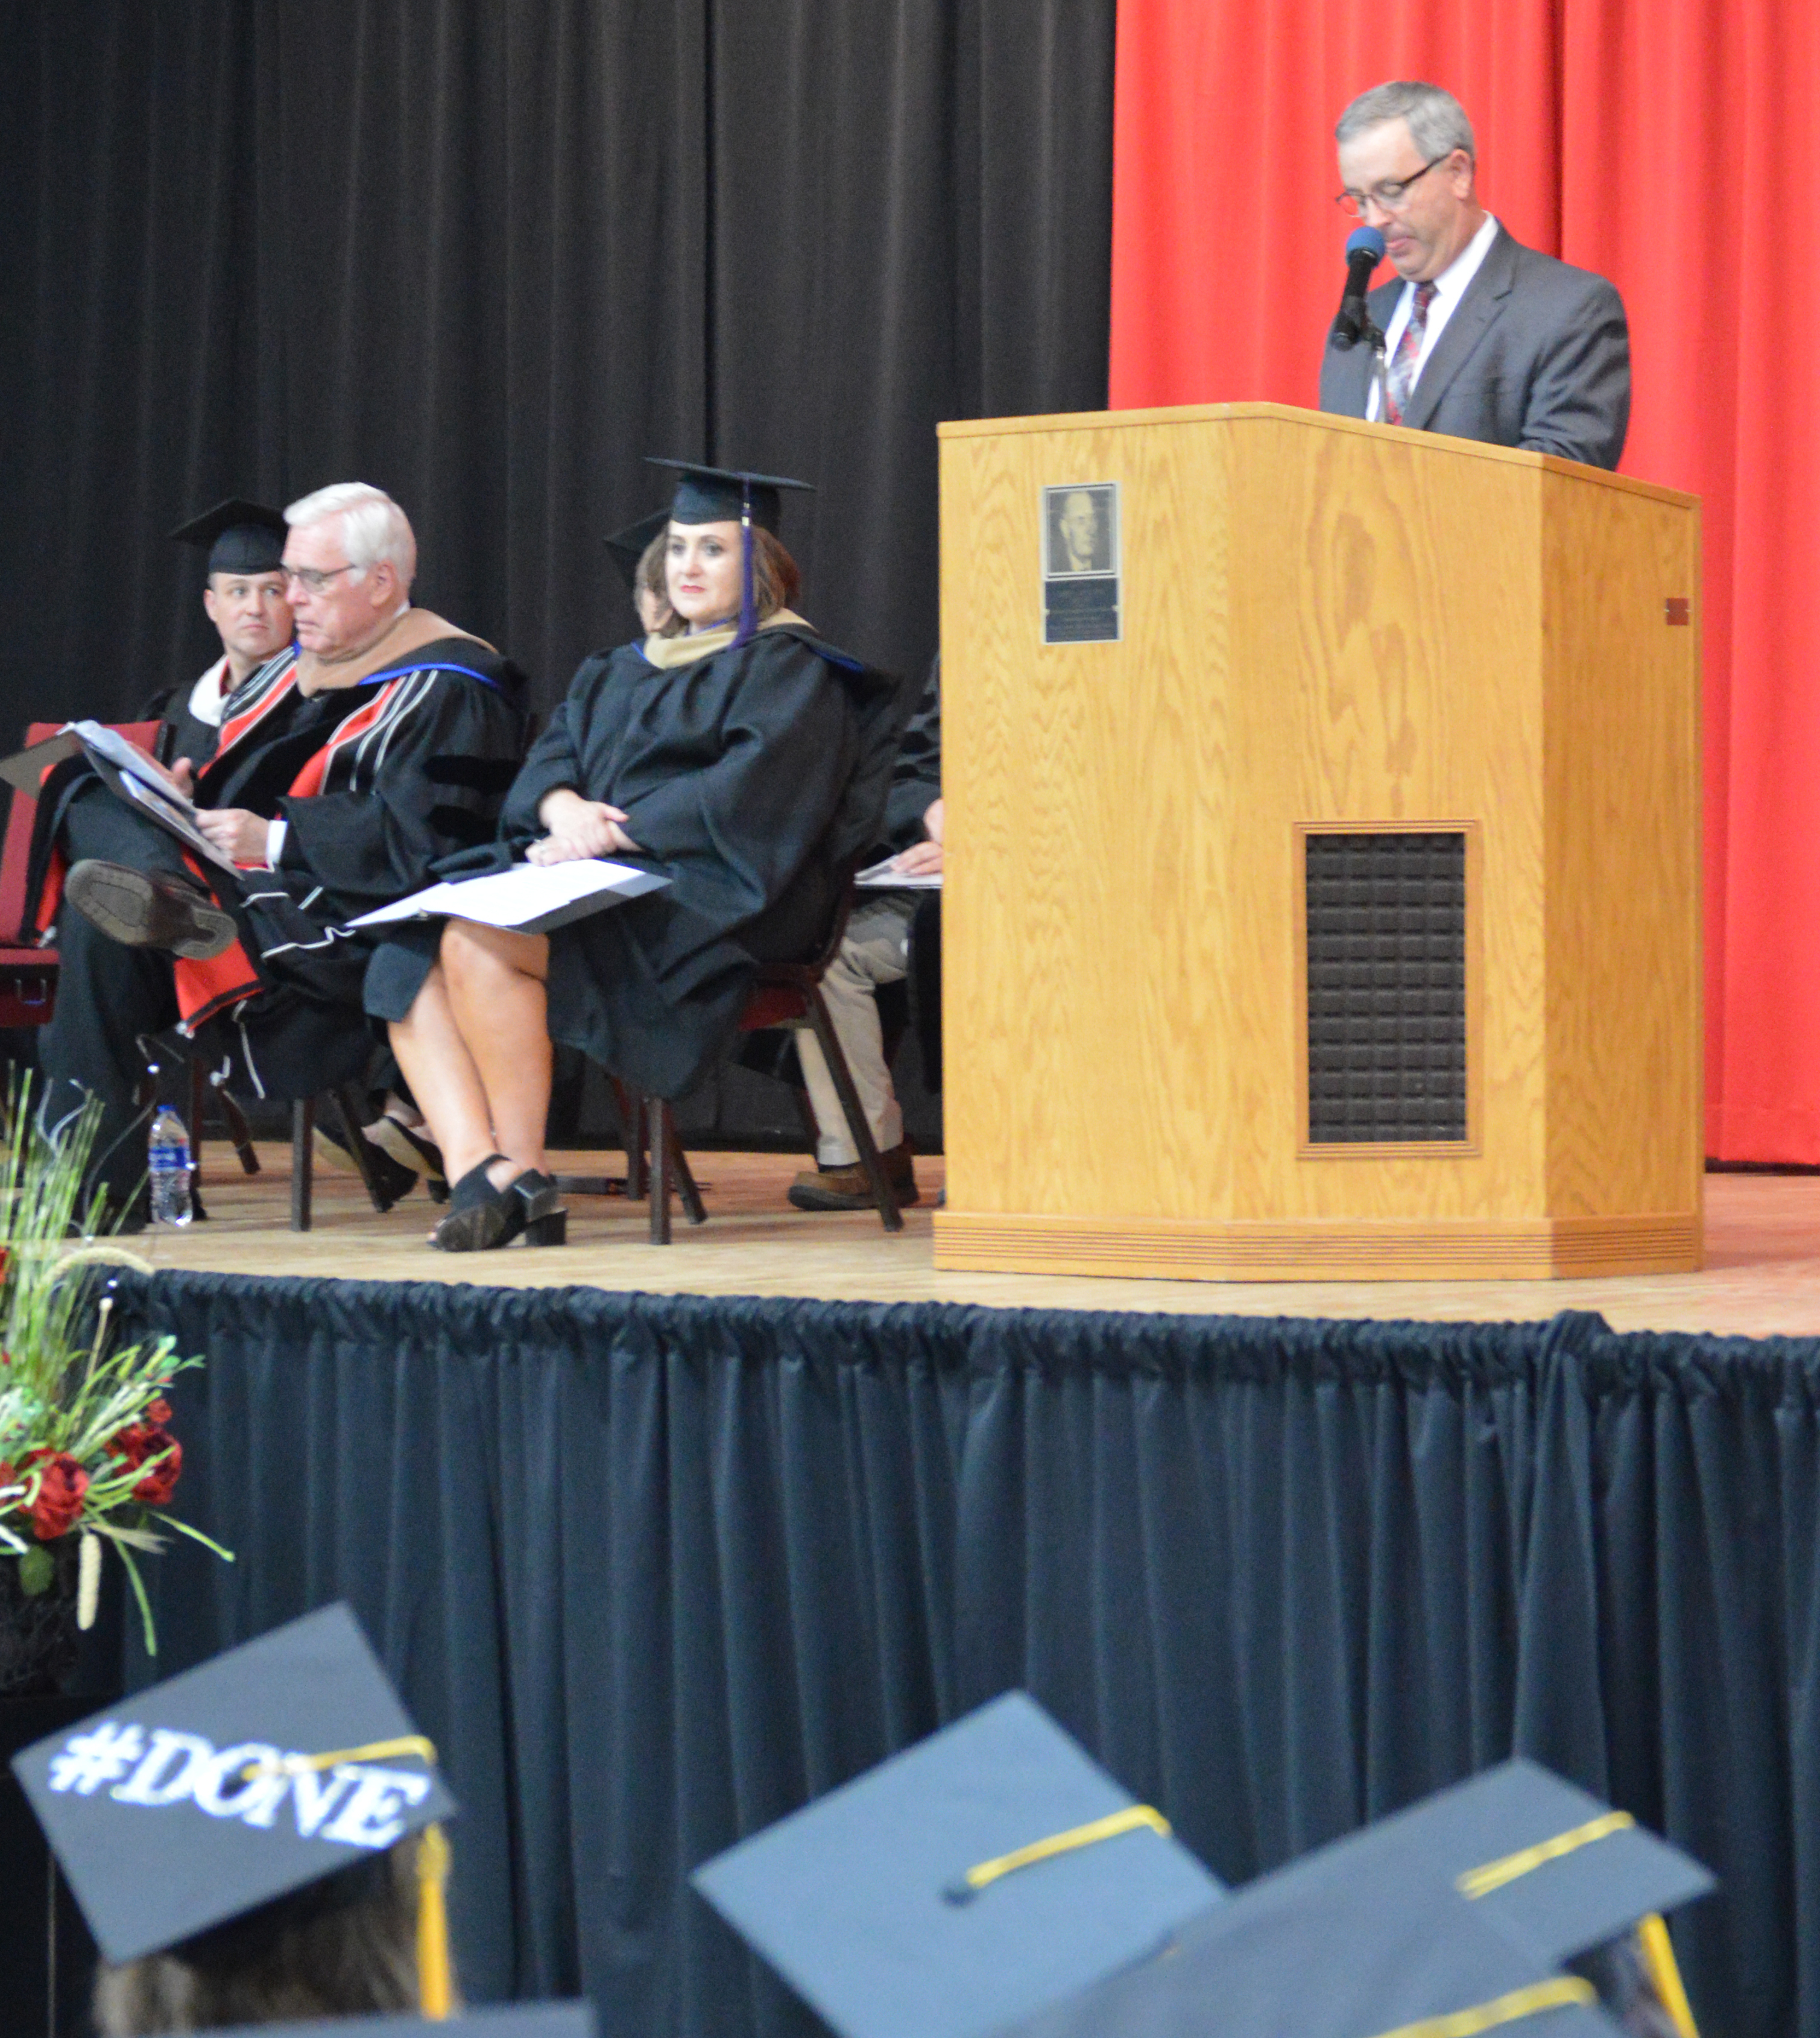 Nebraska ag producer and state senator Dan Hughes advised NCTA graduates to walk through the doors opened by education and industry involvement. (Crawford / NCTA photo)